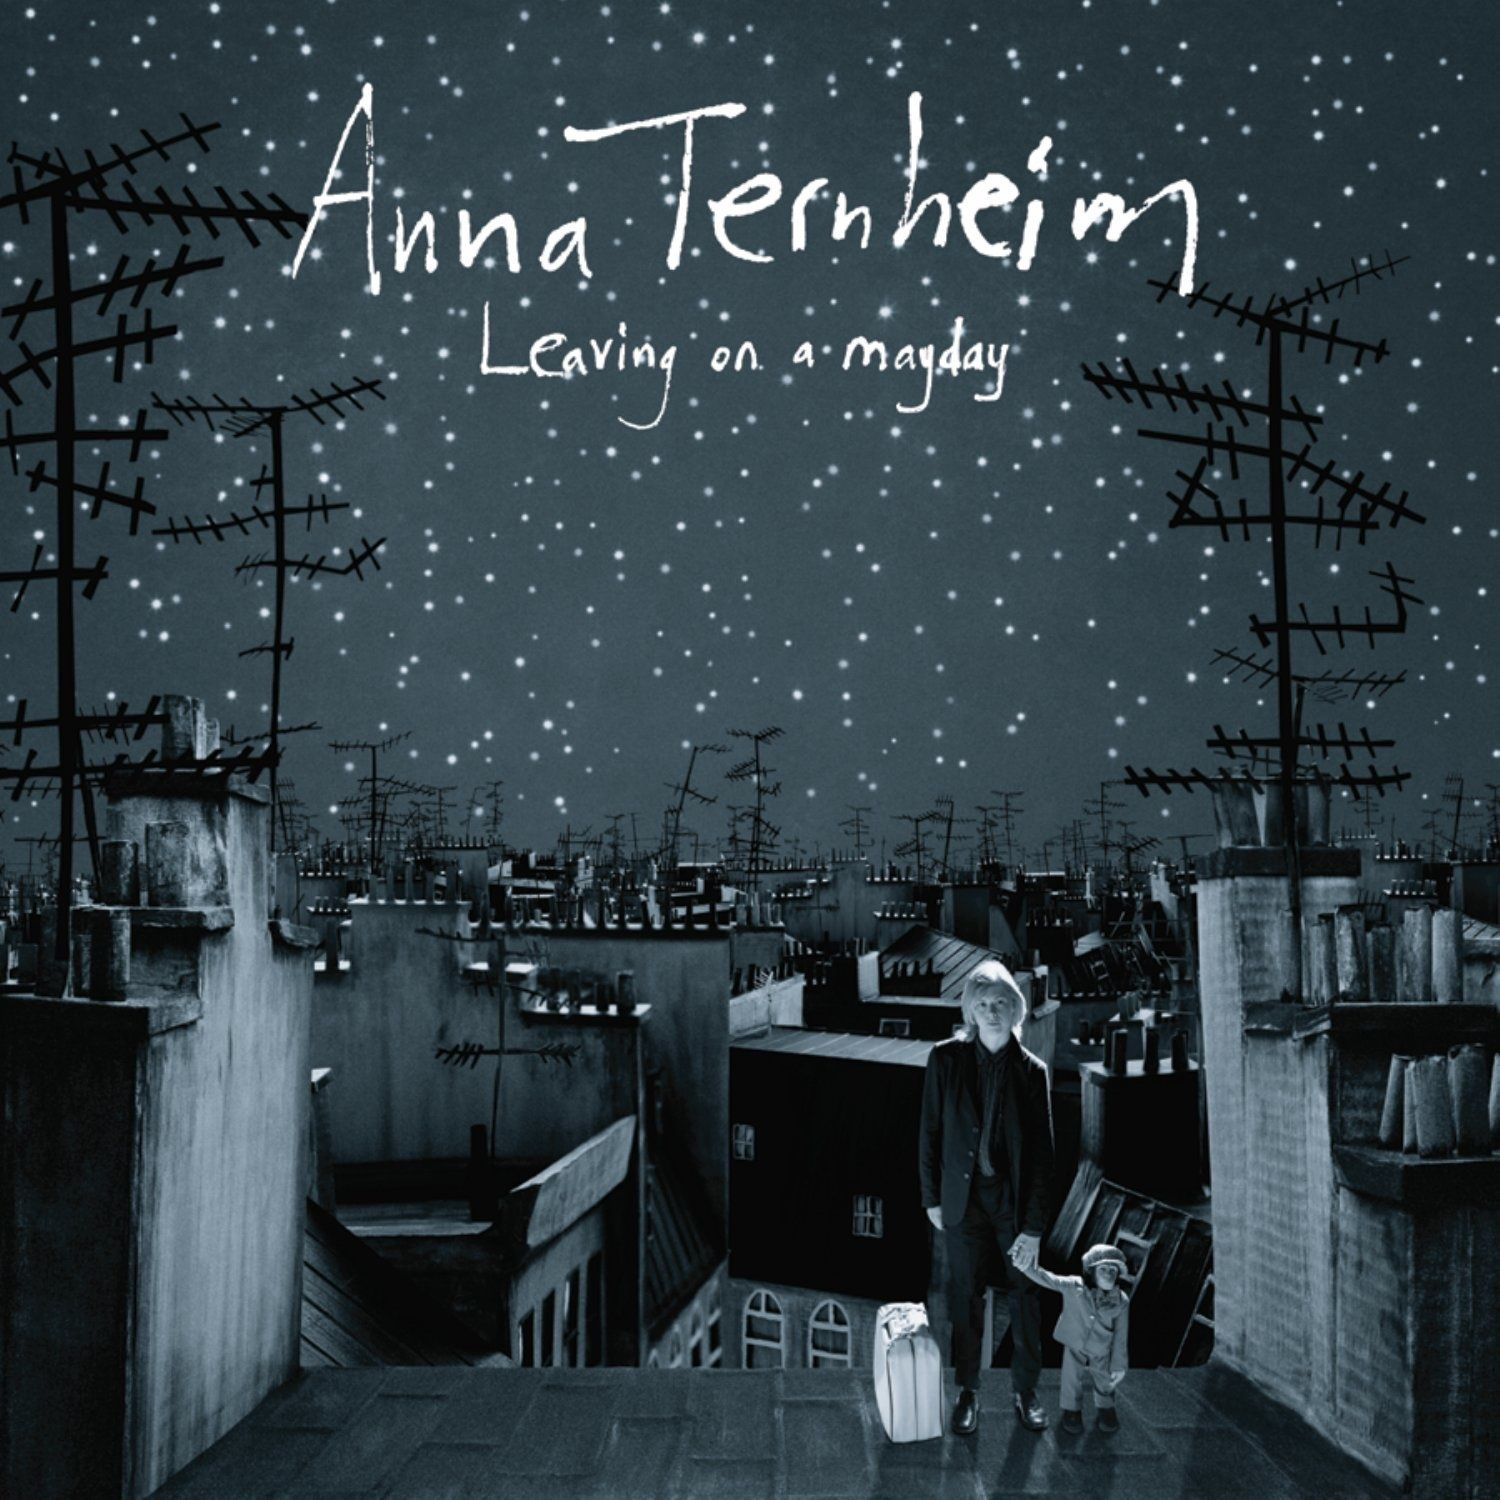 Anna Ternheim - Leaving On A Mayday album cover